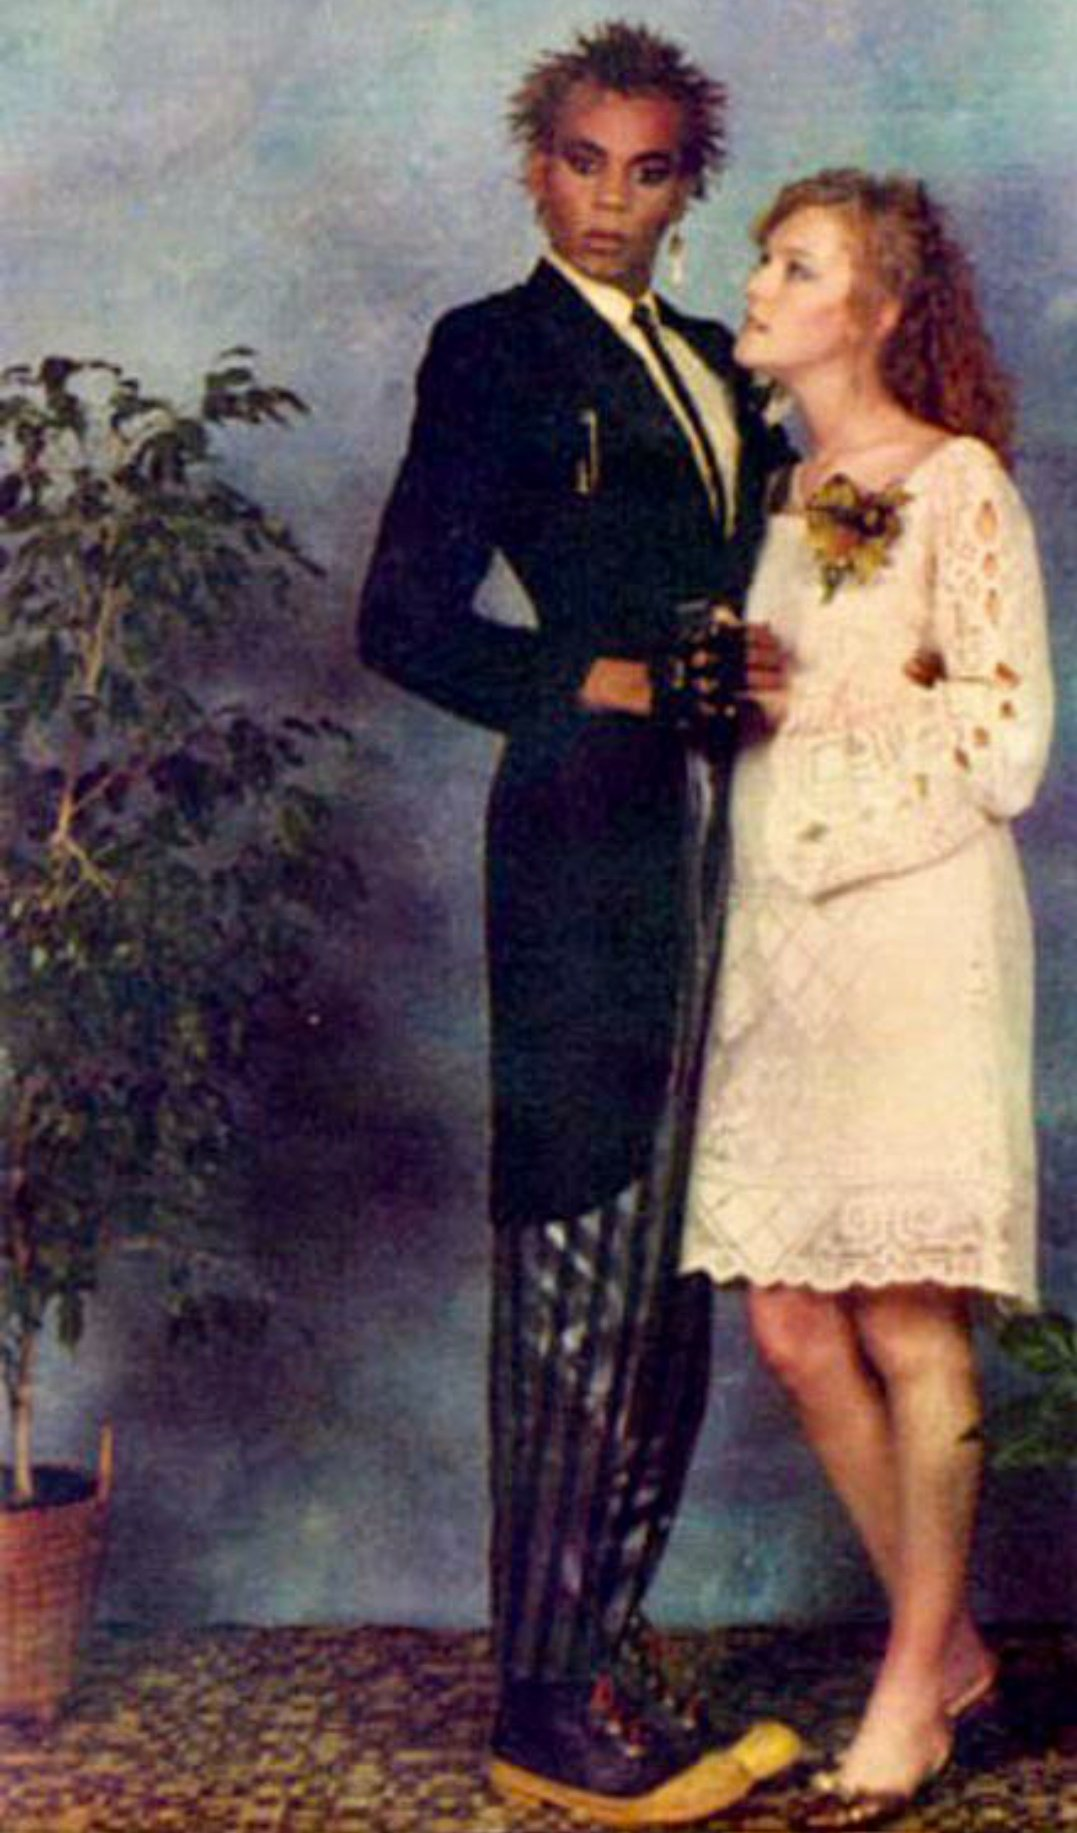 RuPaul prom photo